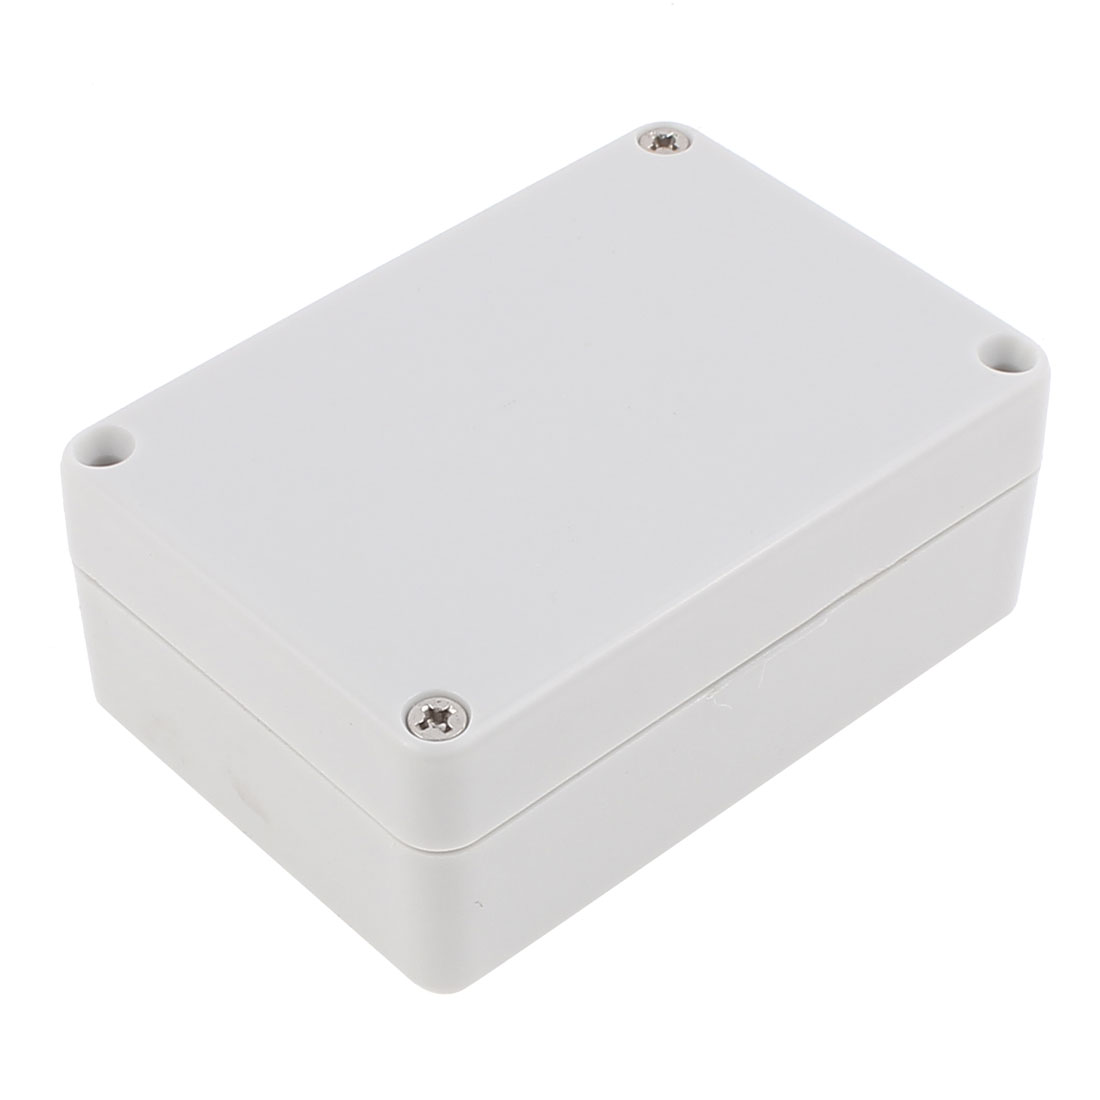 83 x 58 x 33mm Dustproof IP65 Junction Box DIY Terminal Connecting Box Enclosure